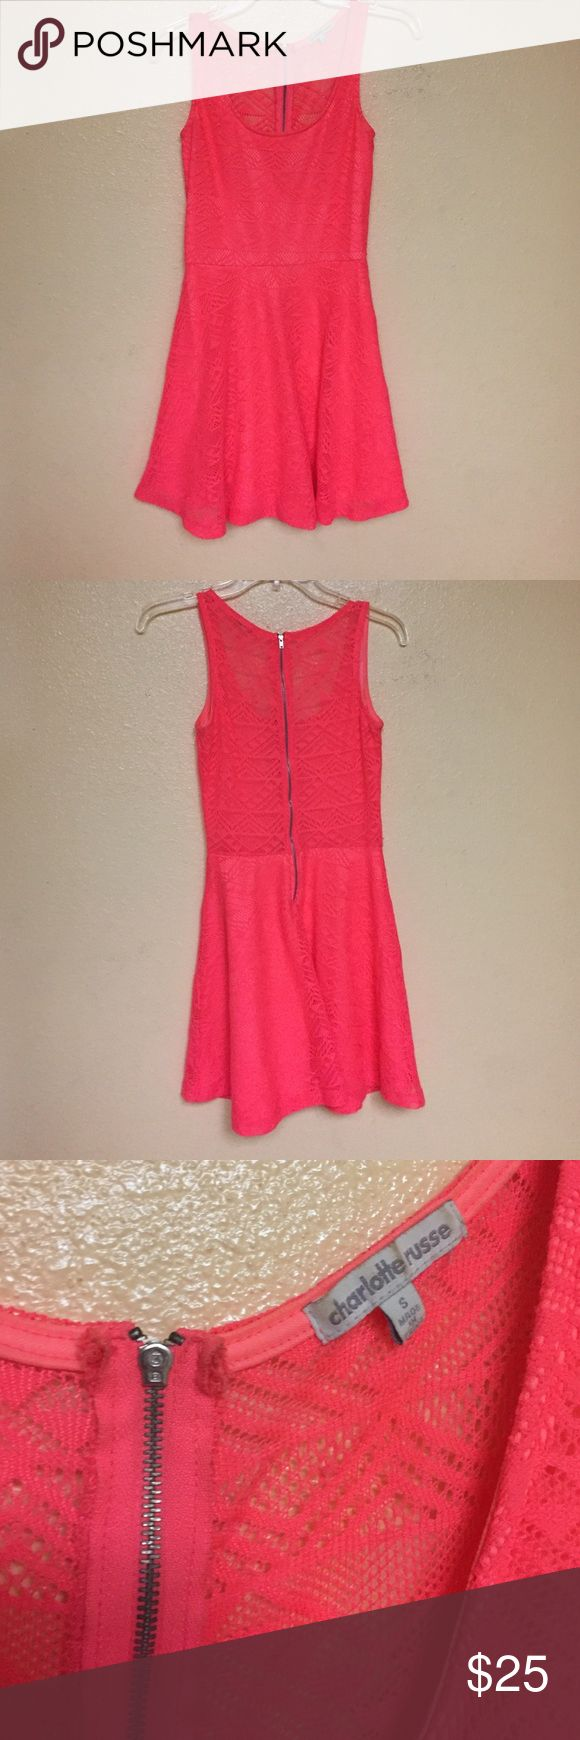 Bright pink dress Perfect summer dress, beautiful color. Worn once. Charlotte Russe Dresses